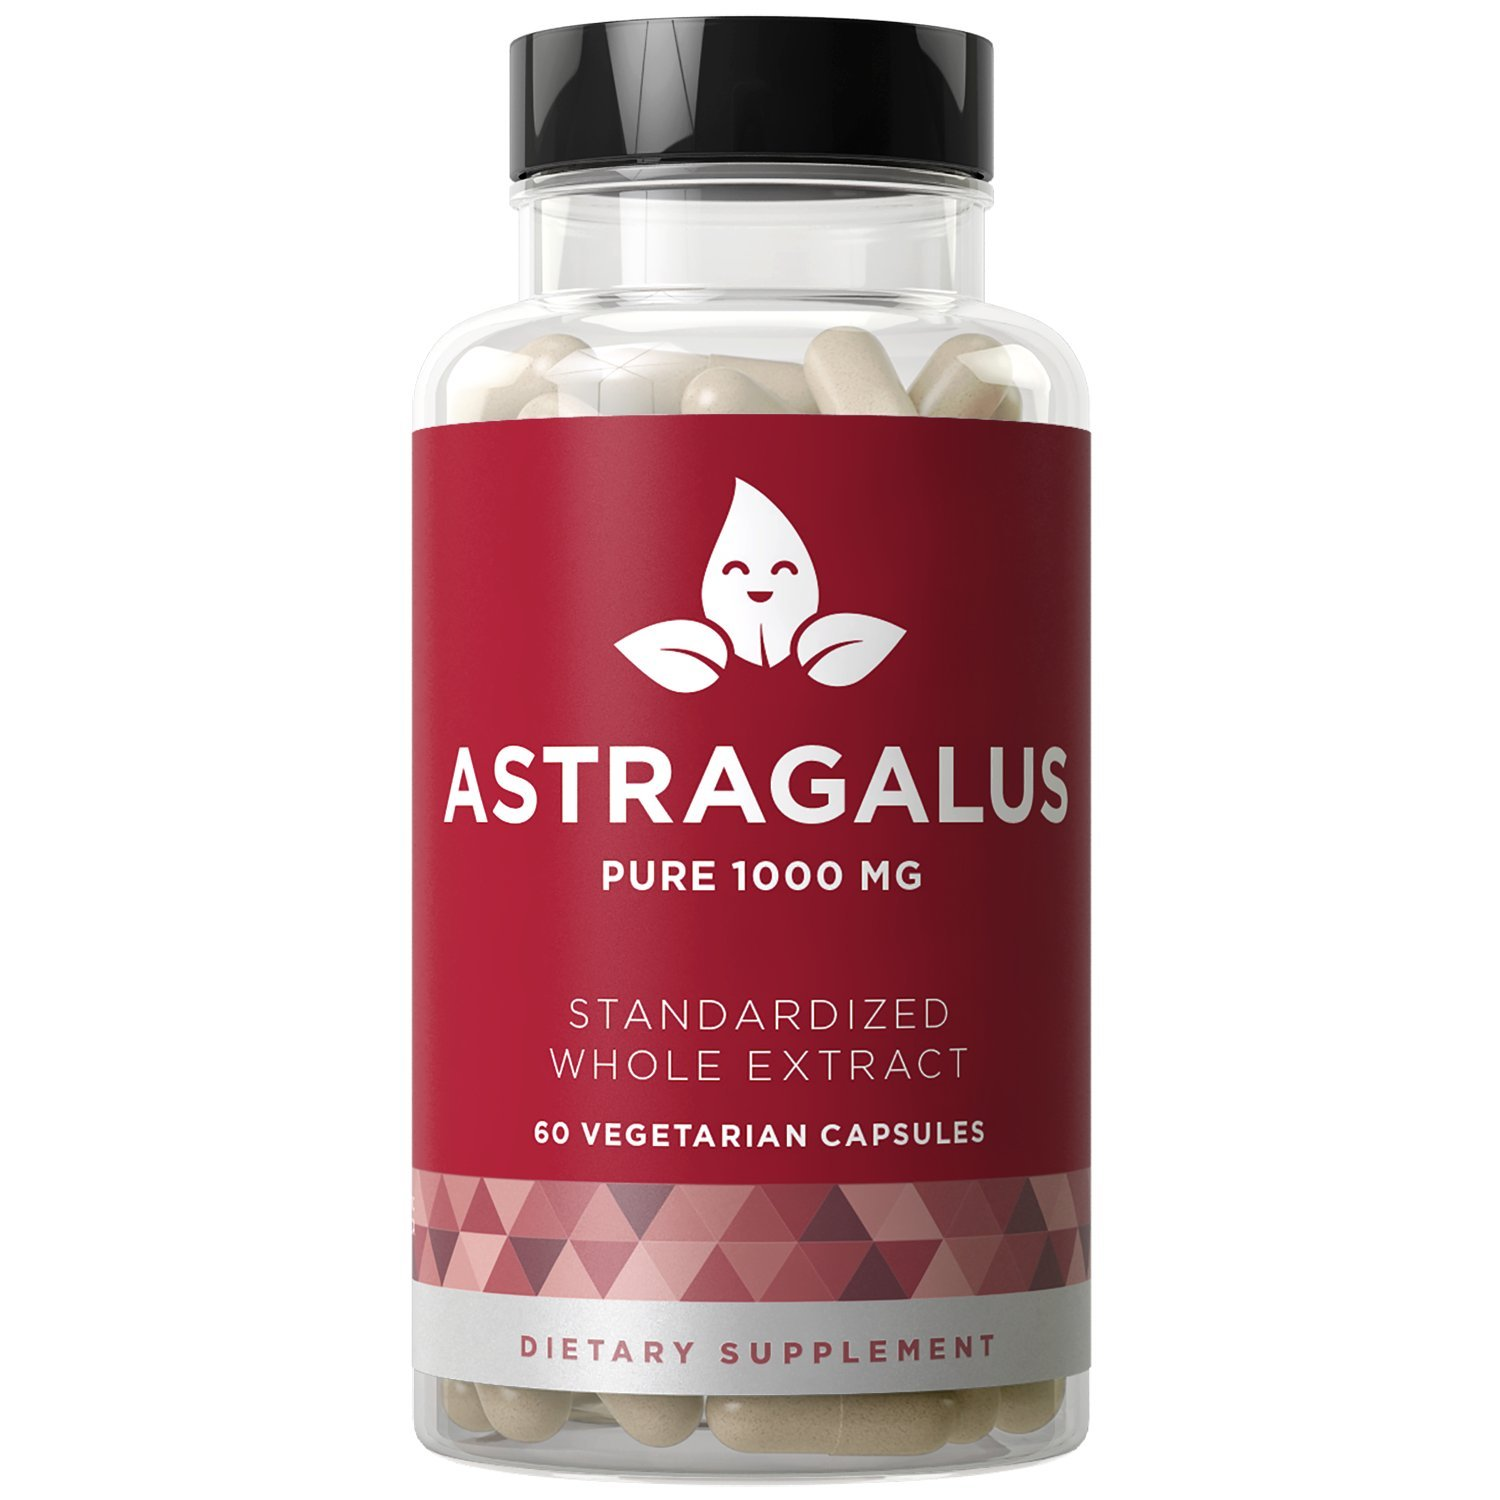 Armor 3 Astragalus Pure 1000 MG – Healthy Immunity Function, Stress Support, Potent Strength for Seasonal Protection – Full-Spectrum & Standardized – 60 Vegetarian Soft Capsules